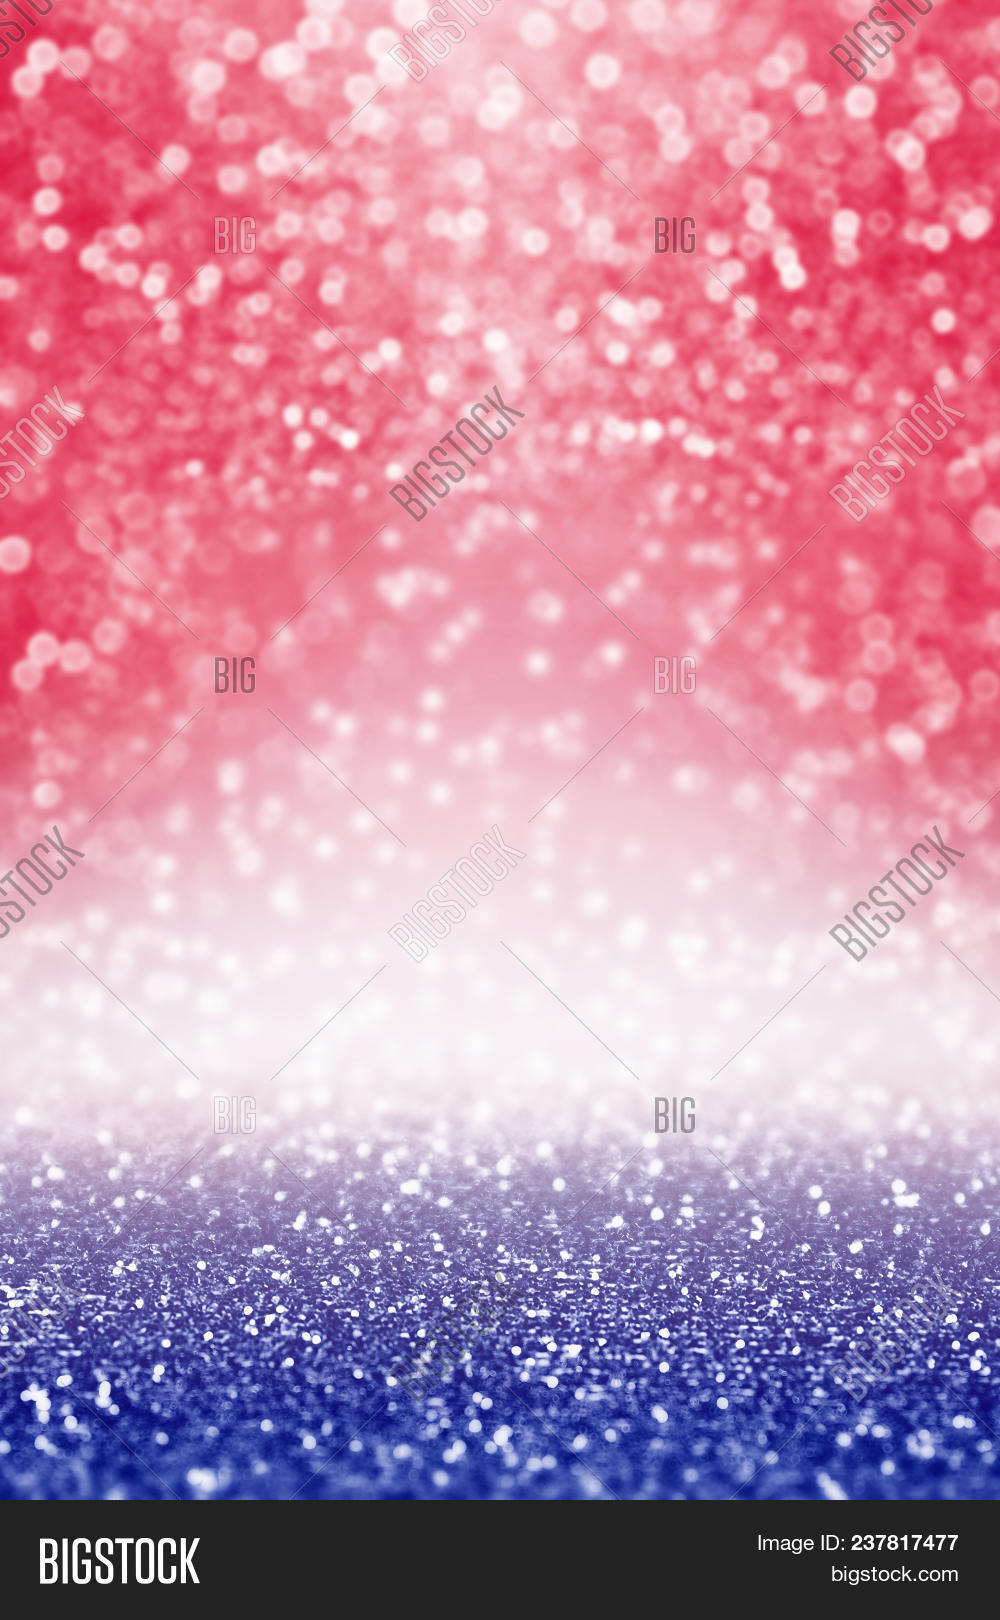 Abstract Patriotic Red Image Photo Free Trial Bigstock